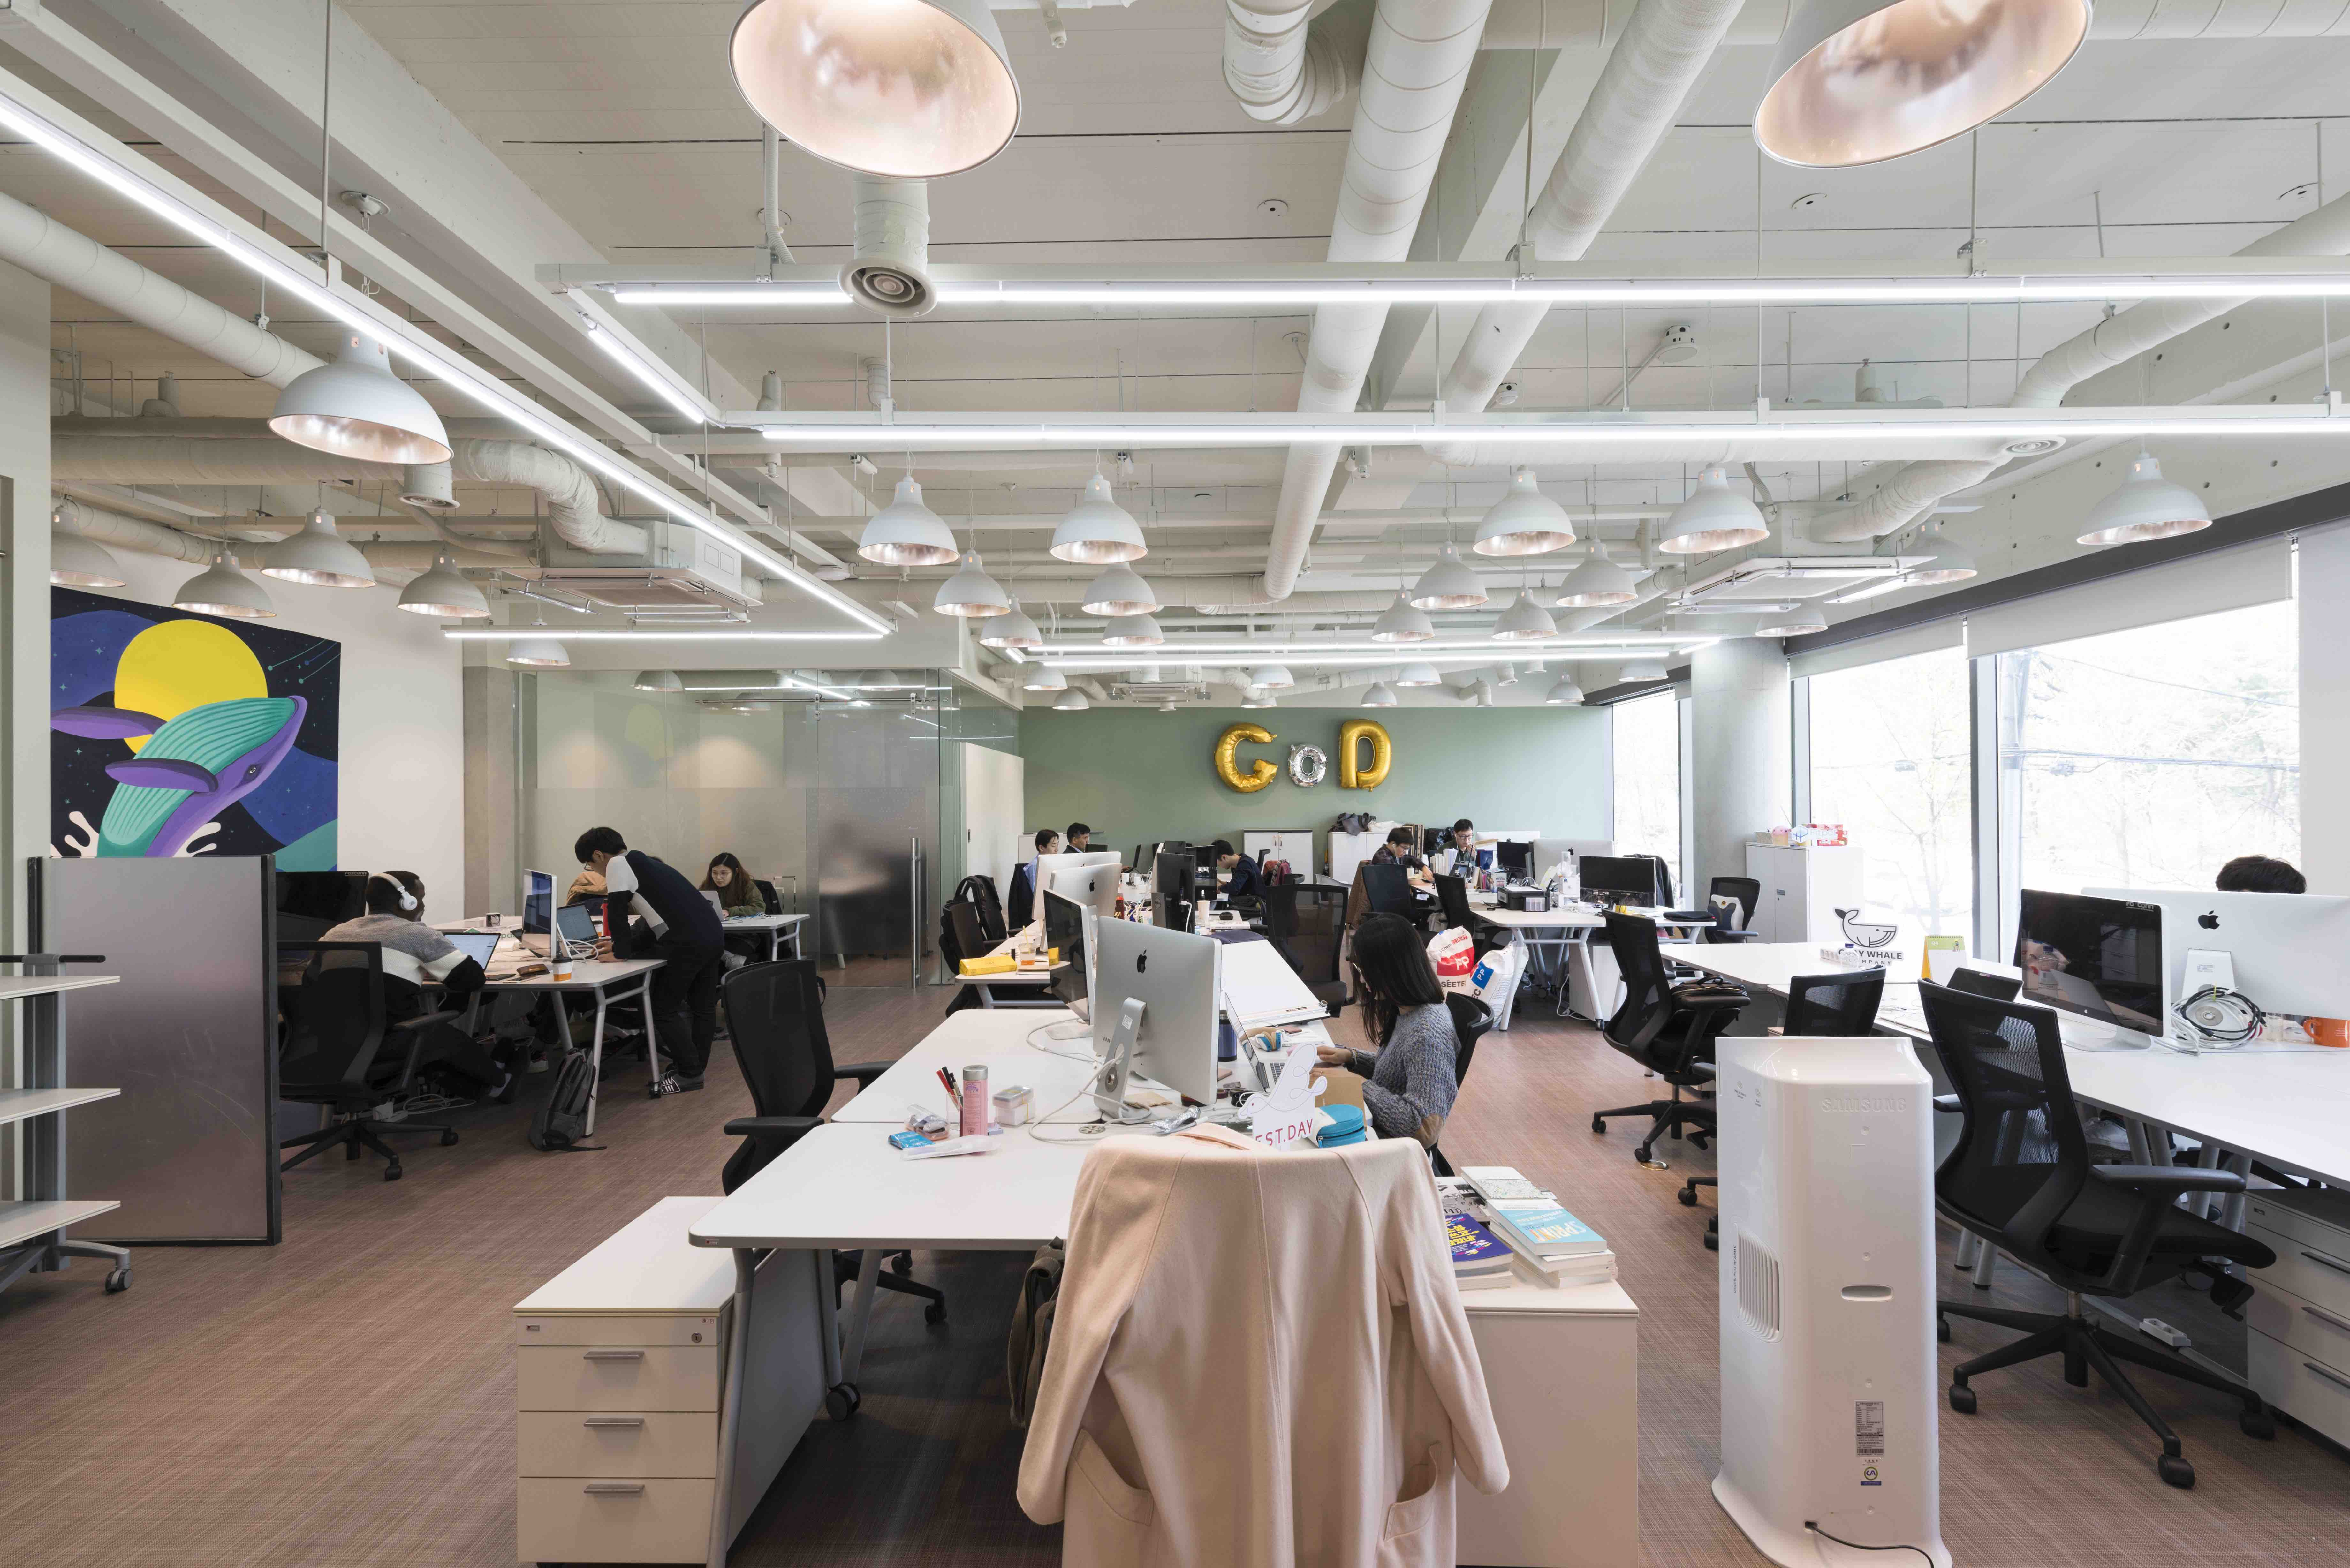 A new wave of innovation in Korea is being driven by startups, including those based at D.CAMP, above. The hub has hosted such startup stars as Supercell, from Finland, and Oculus, from Silicon Valley. (Photo: D.CAMP)